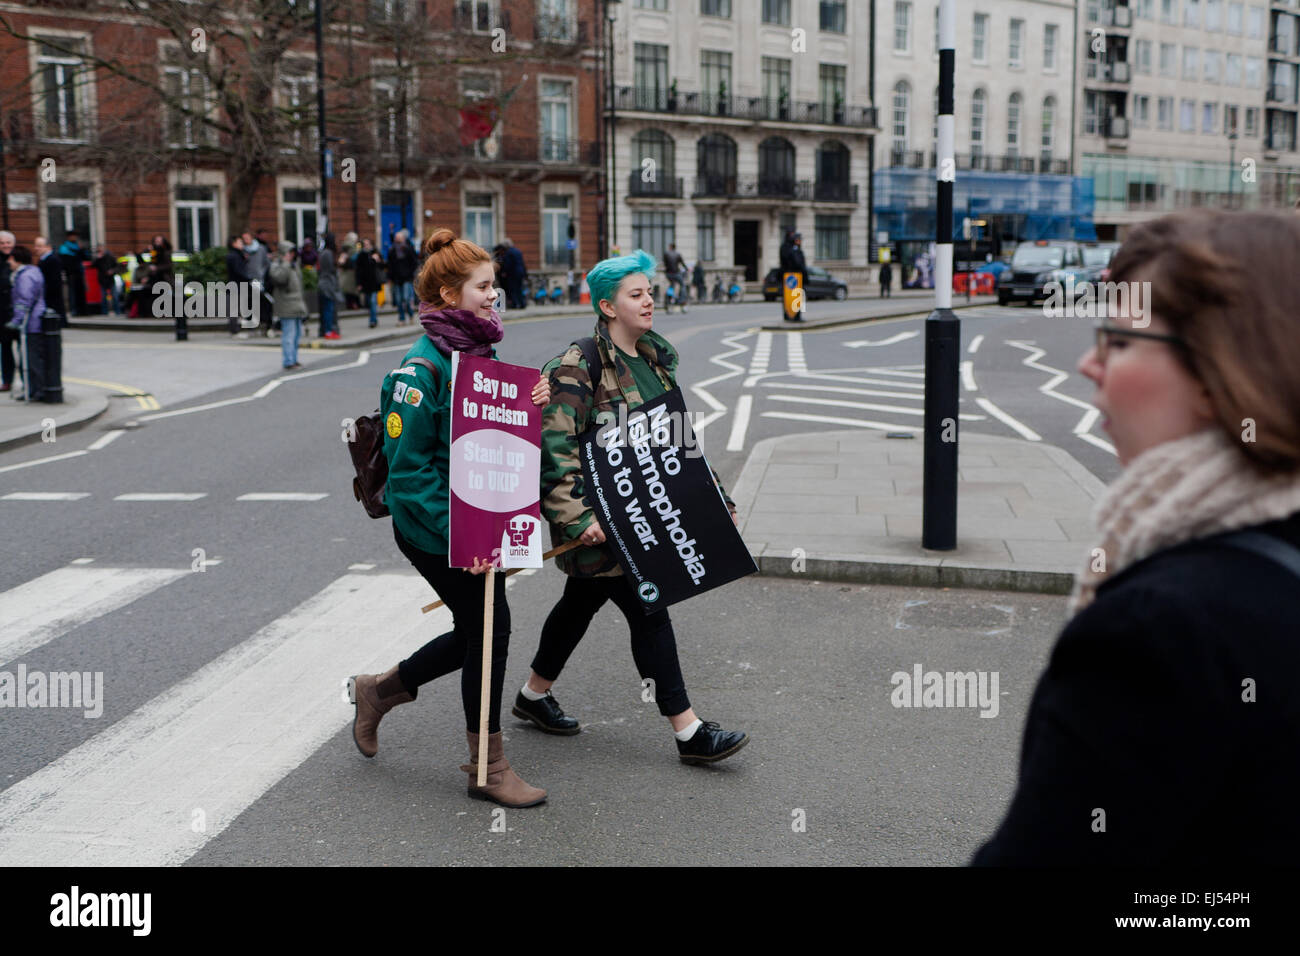 London, UK. 21st March, 2015. Protesters waliking with placard at the Stand up to racism and fascism Protest London, - Stock Image